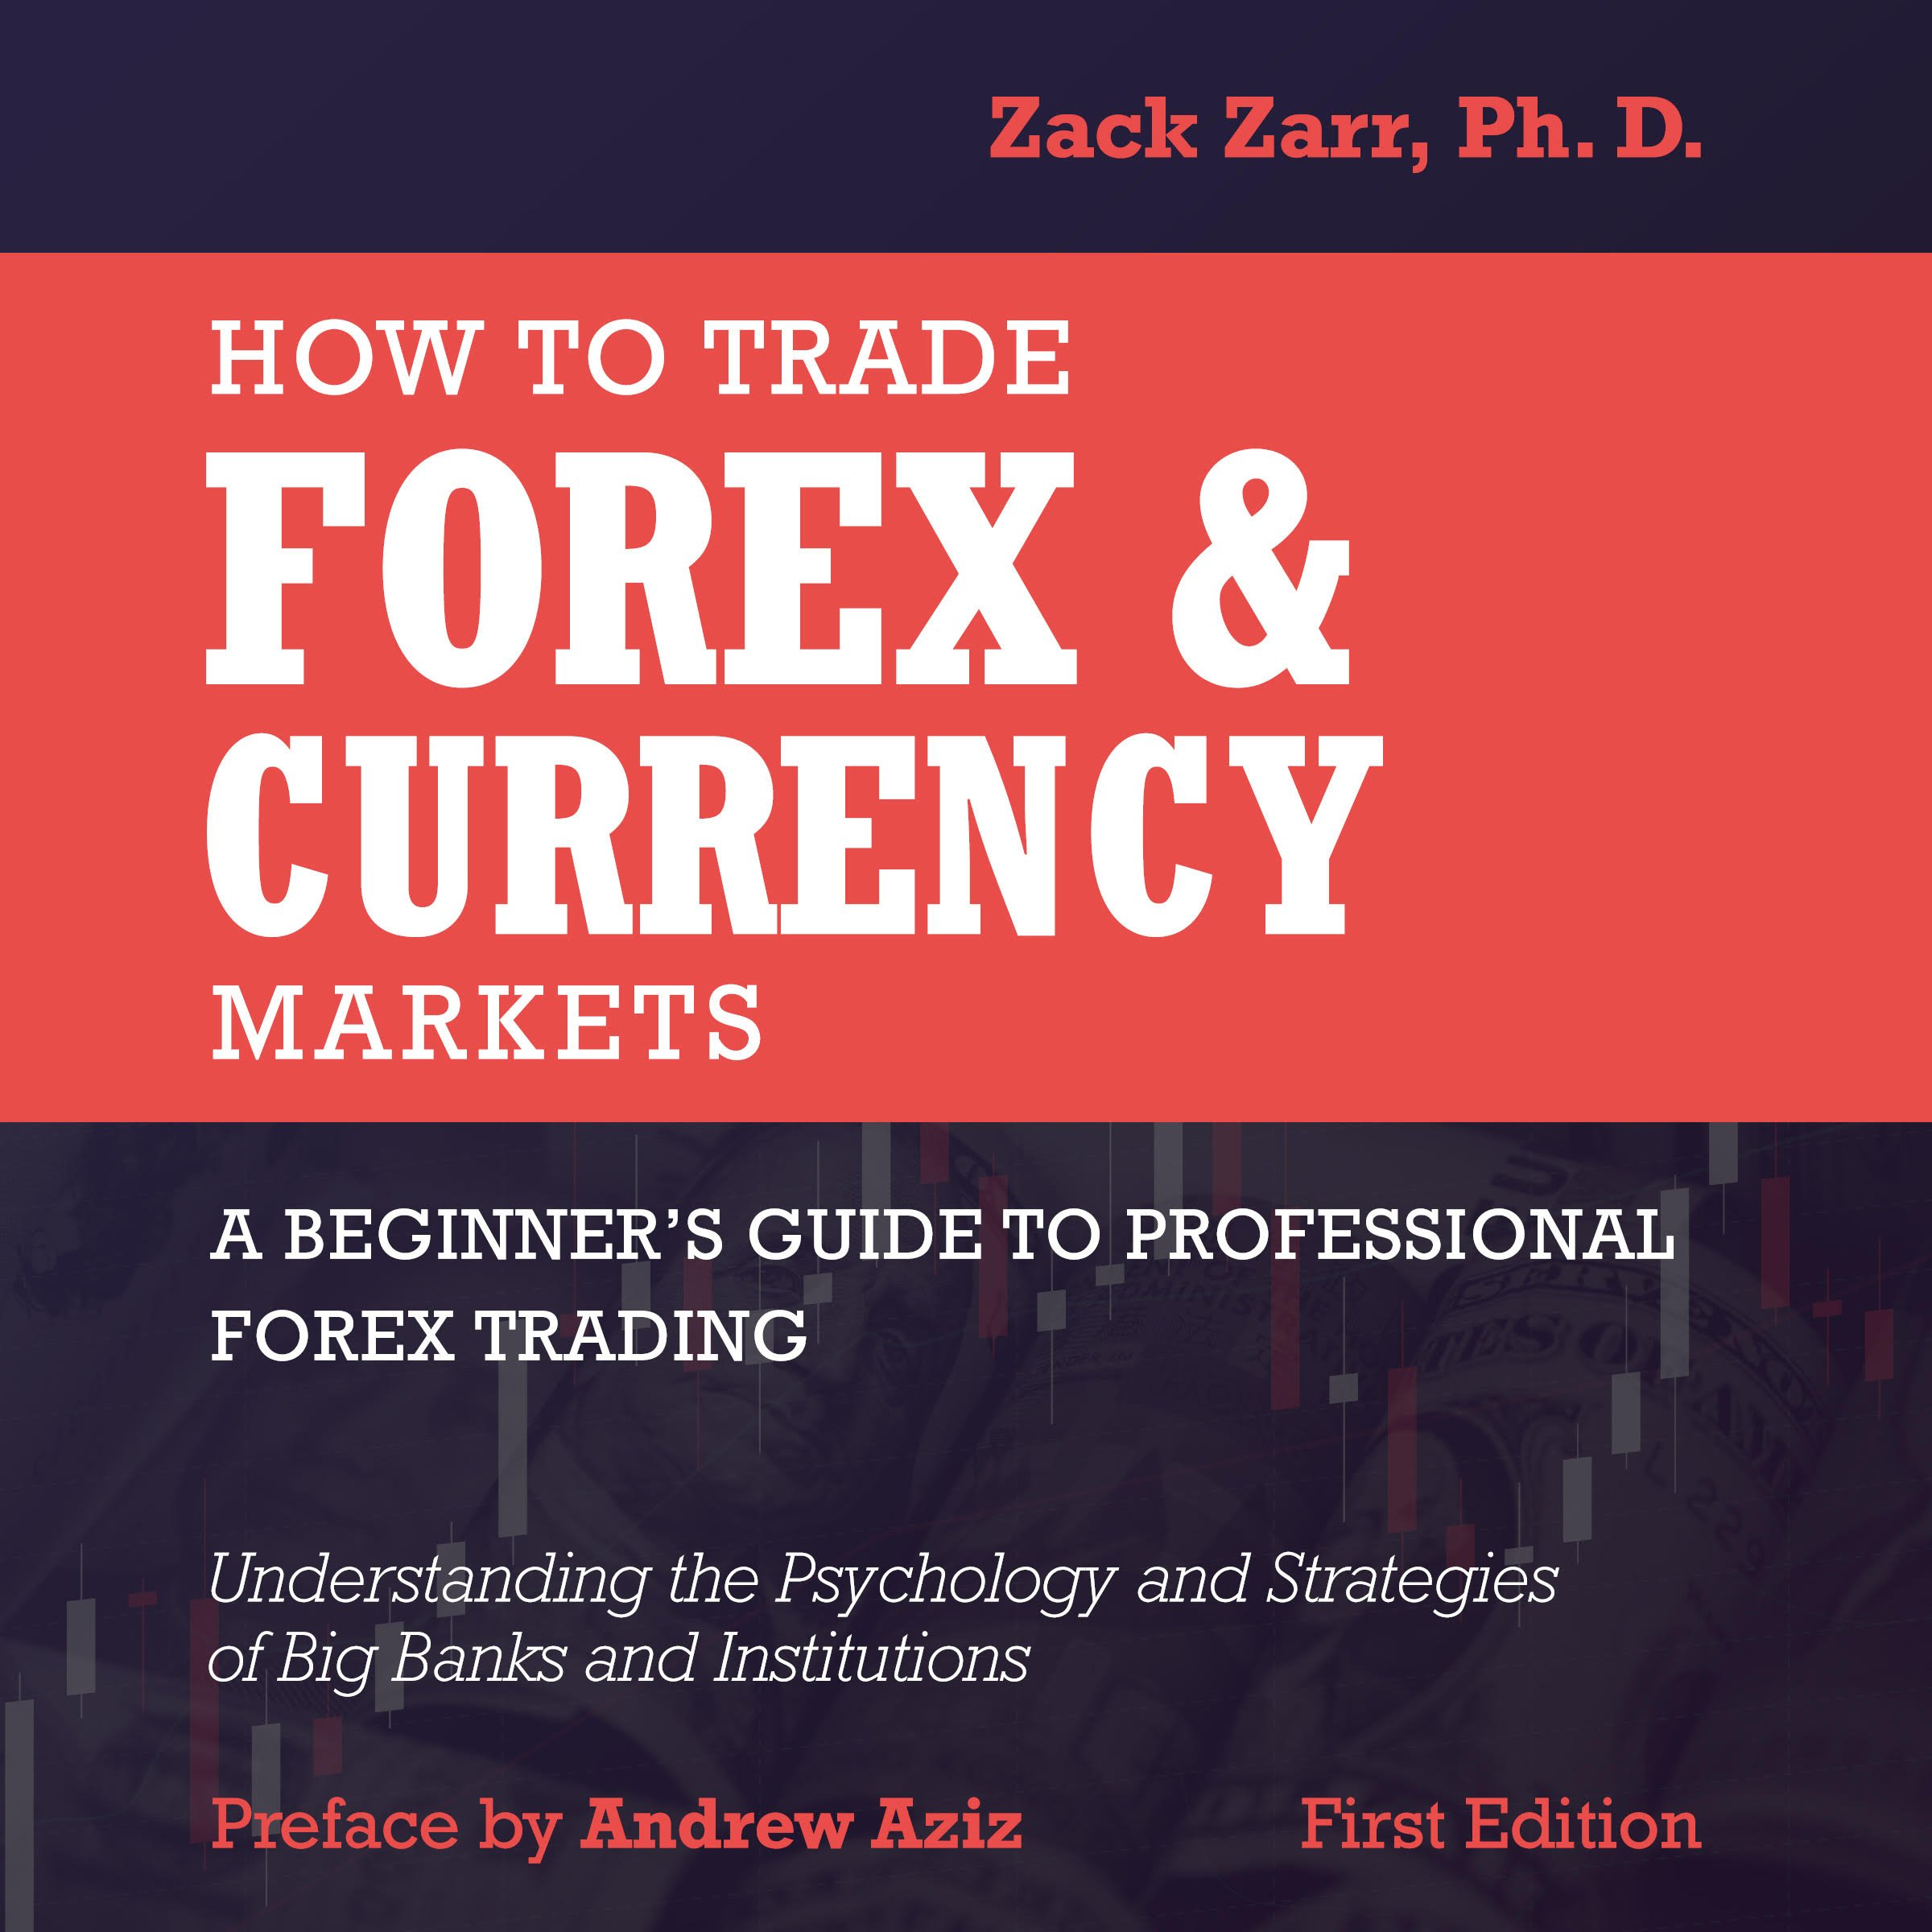 How To Trade Forex And Currency Markets  A Beginner's Guide To Professional Forex Trading  Understanding The Psychology And Strategies Of Big Banks And Institutions